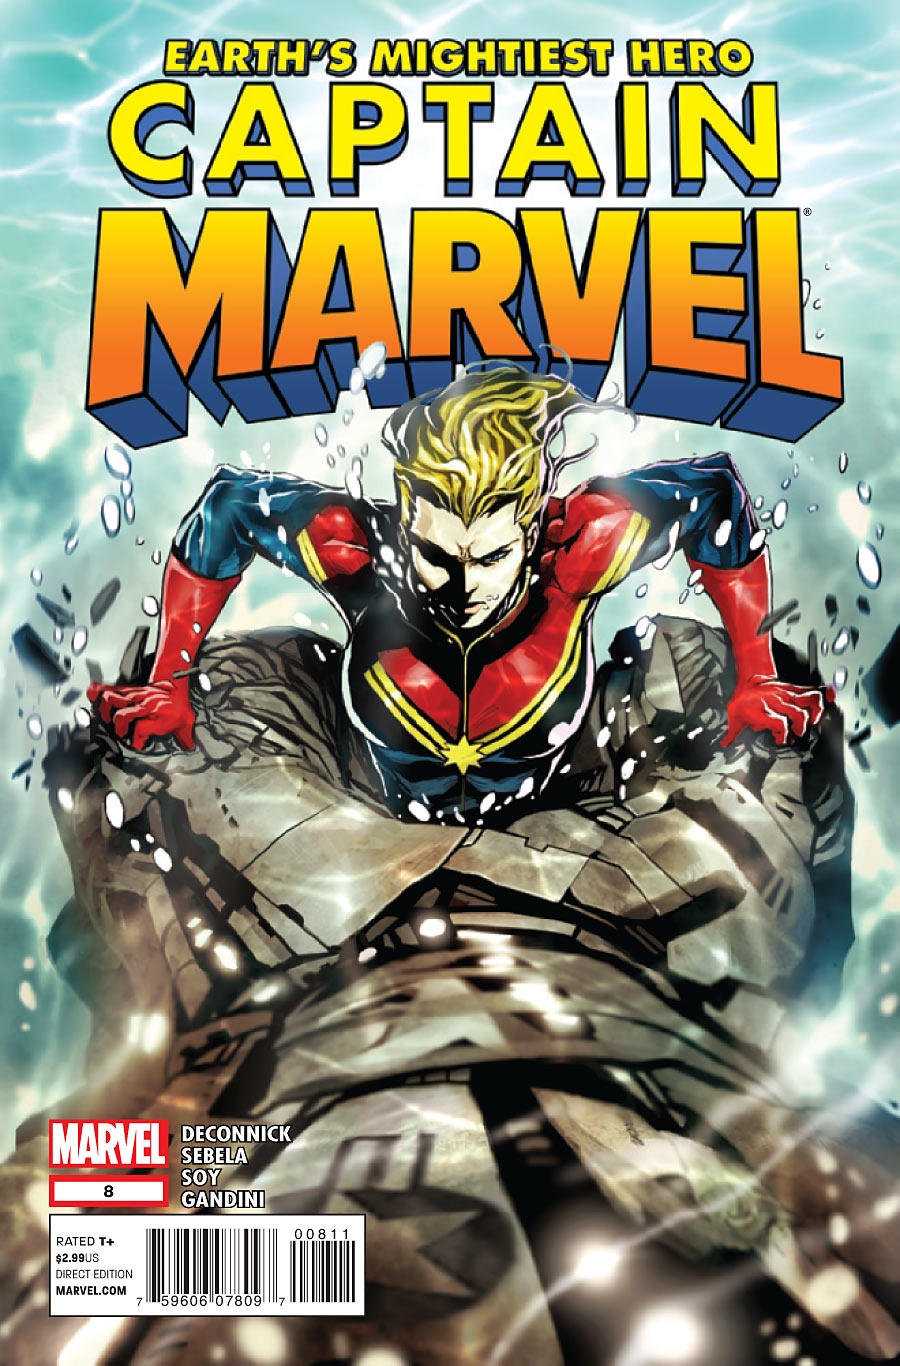 My second issue co-writing CAPTAIN MARVEL is out today. Lots of robotic smashing and smashing of robots going on. Hope you dig it, I had fun/sleeplessness/crippling self-doubt working on it, but I think it came out pretty great.